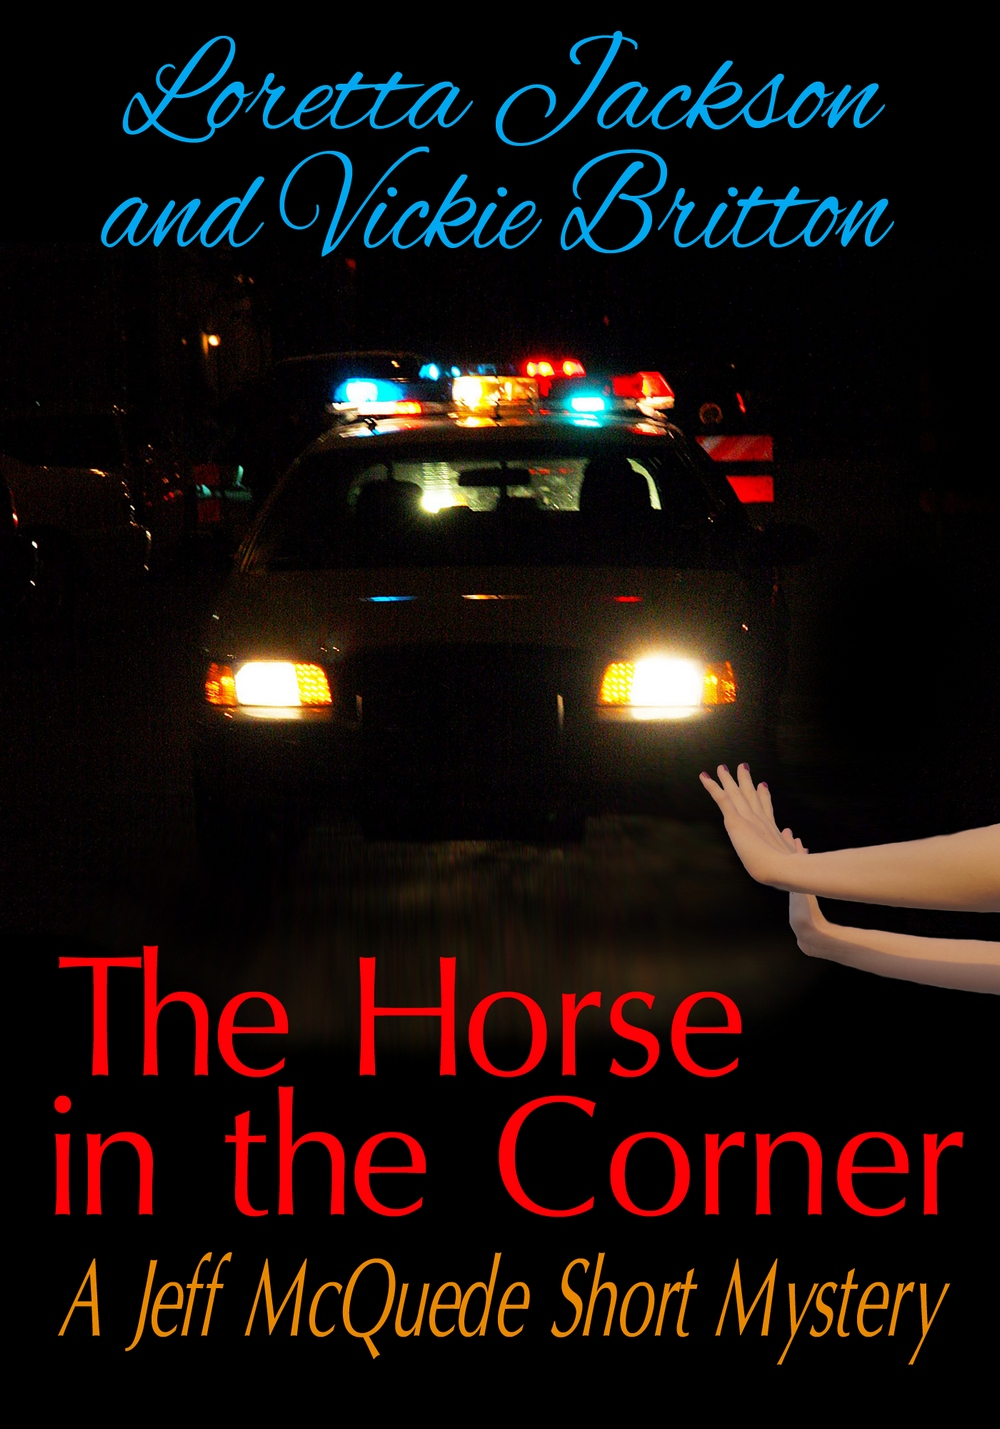 ONLY 99c--READ  A JEFF MCQUEDE  SHORT STORY --THE HORSE IN THE CORNER